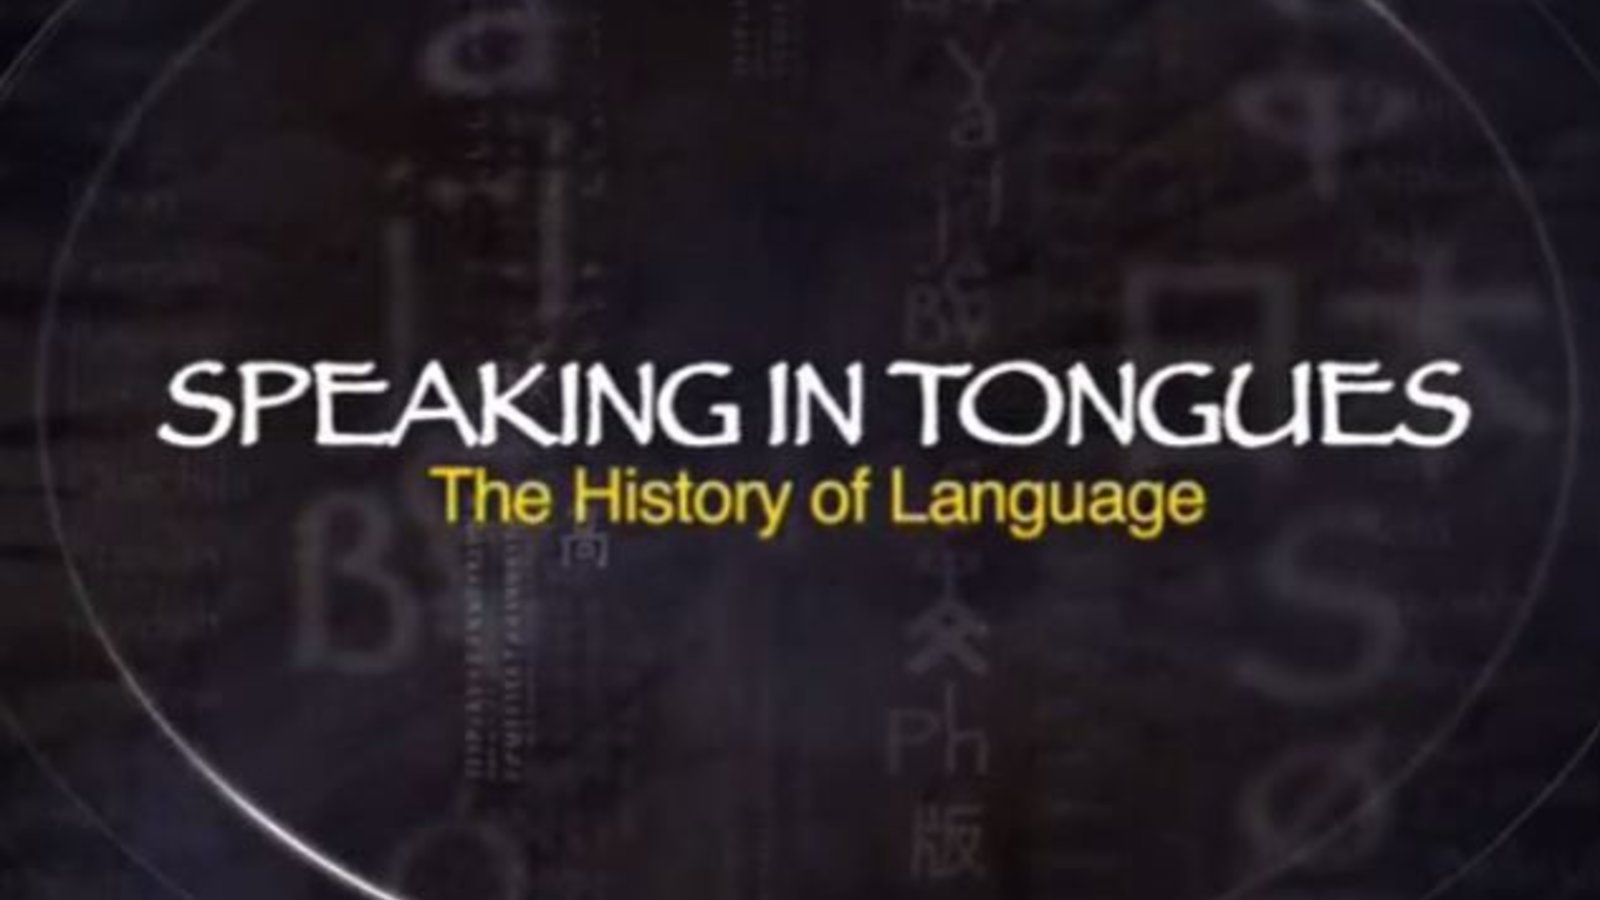 Speaking In Tongues - The History of Language